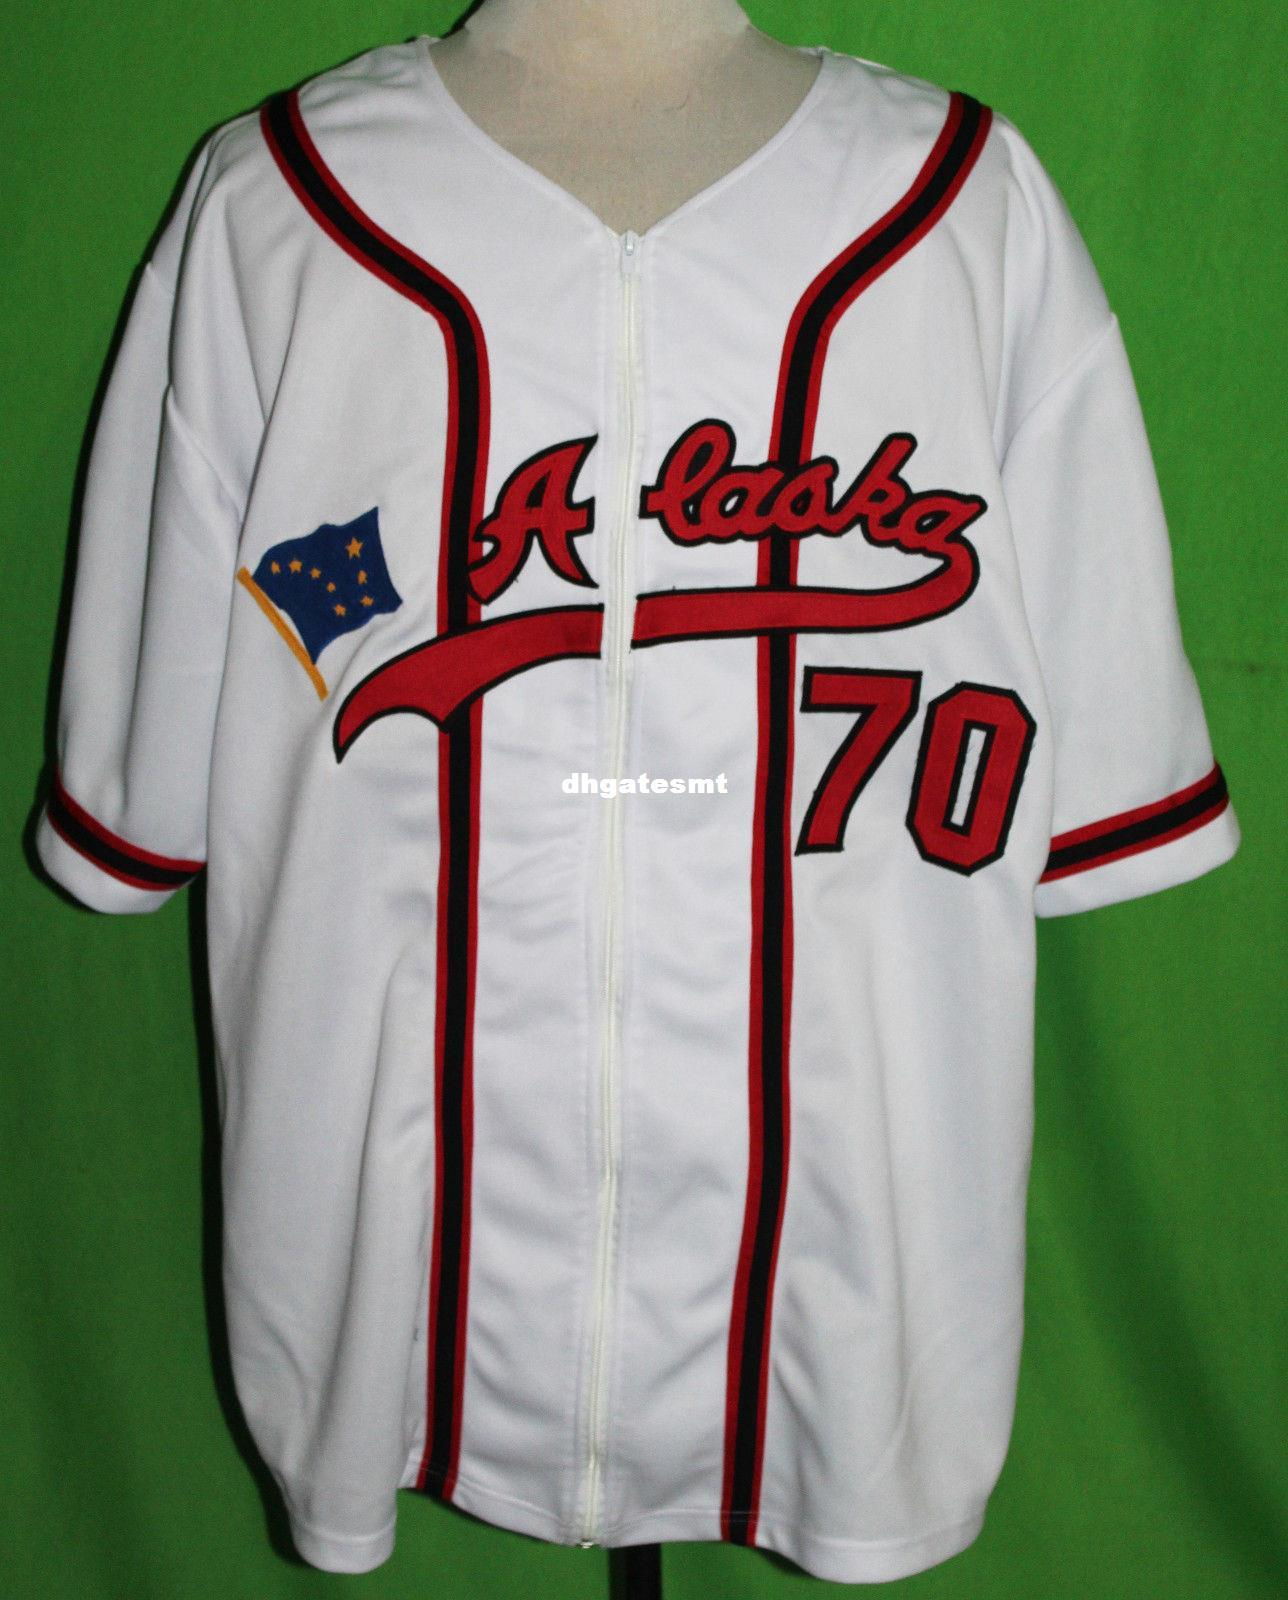 2019 Cheap Retro ALASKA GOLDPANNERS  70 1964 Home BASEBALL JERSEY TOM  SEAVER Or Custom Any Number Any Mens Jerseys XS 5XL From Dhgatesmt 1cda567ae